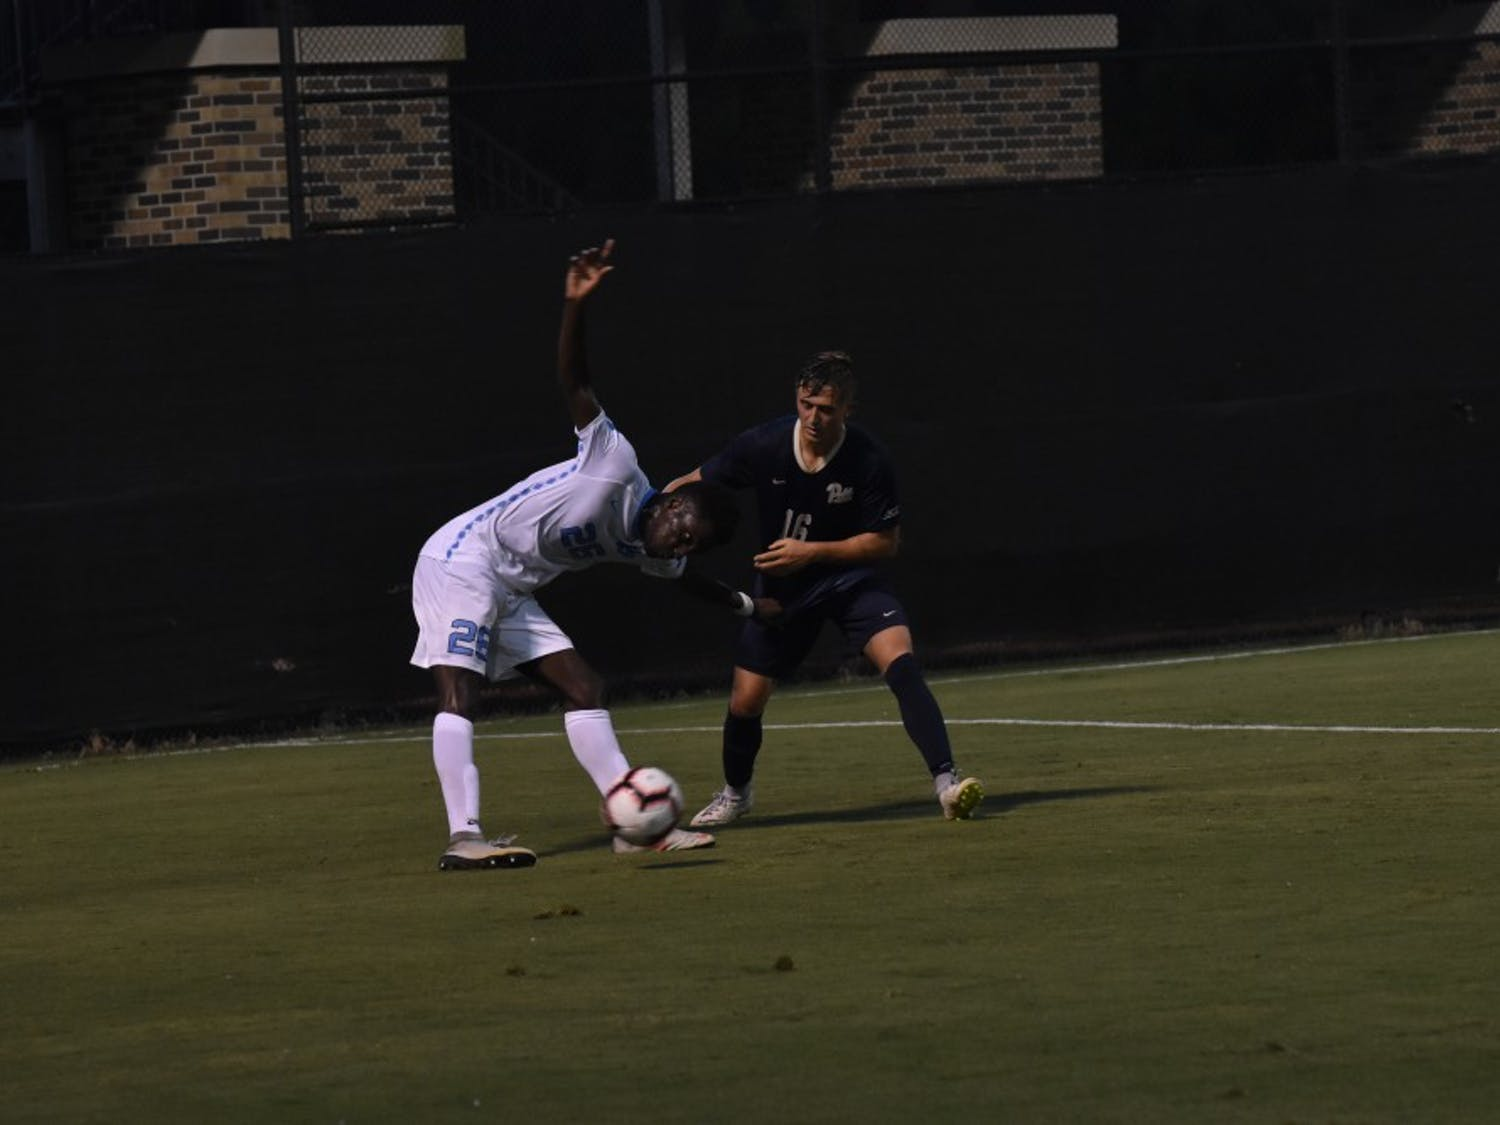 Forward Jelani Peiters (26) fights for the ball against defender Nyk Sessock (16) during Saturday night's game against Pittsburgh at Koskinen Stadium.